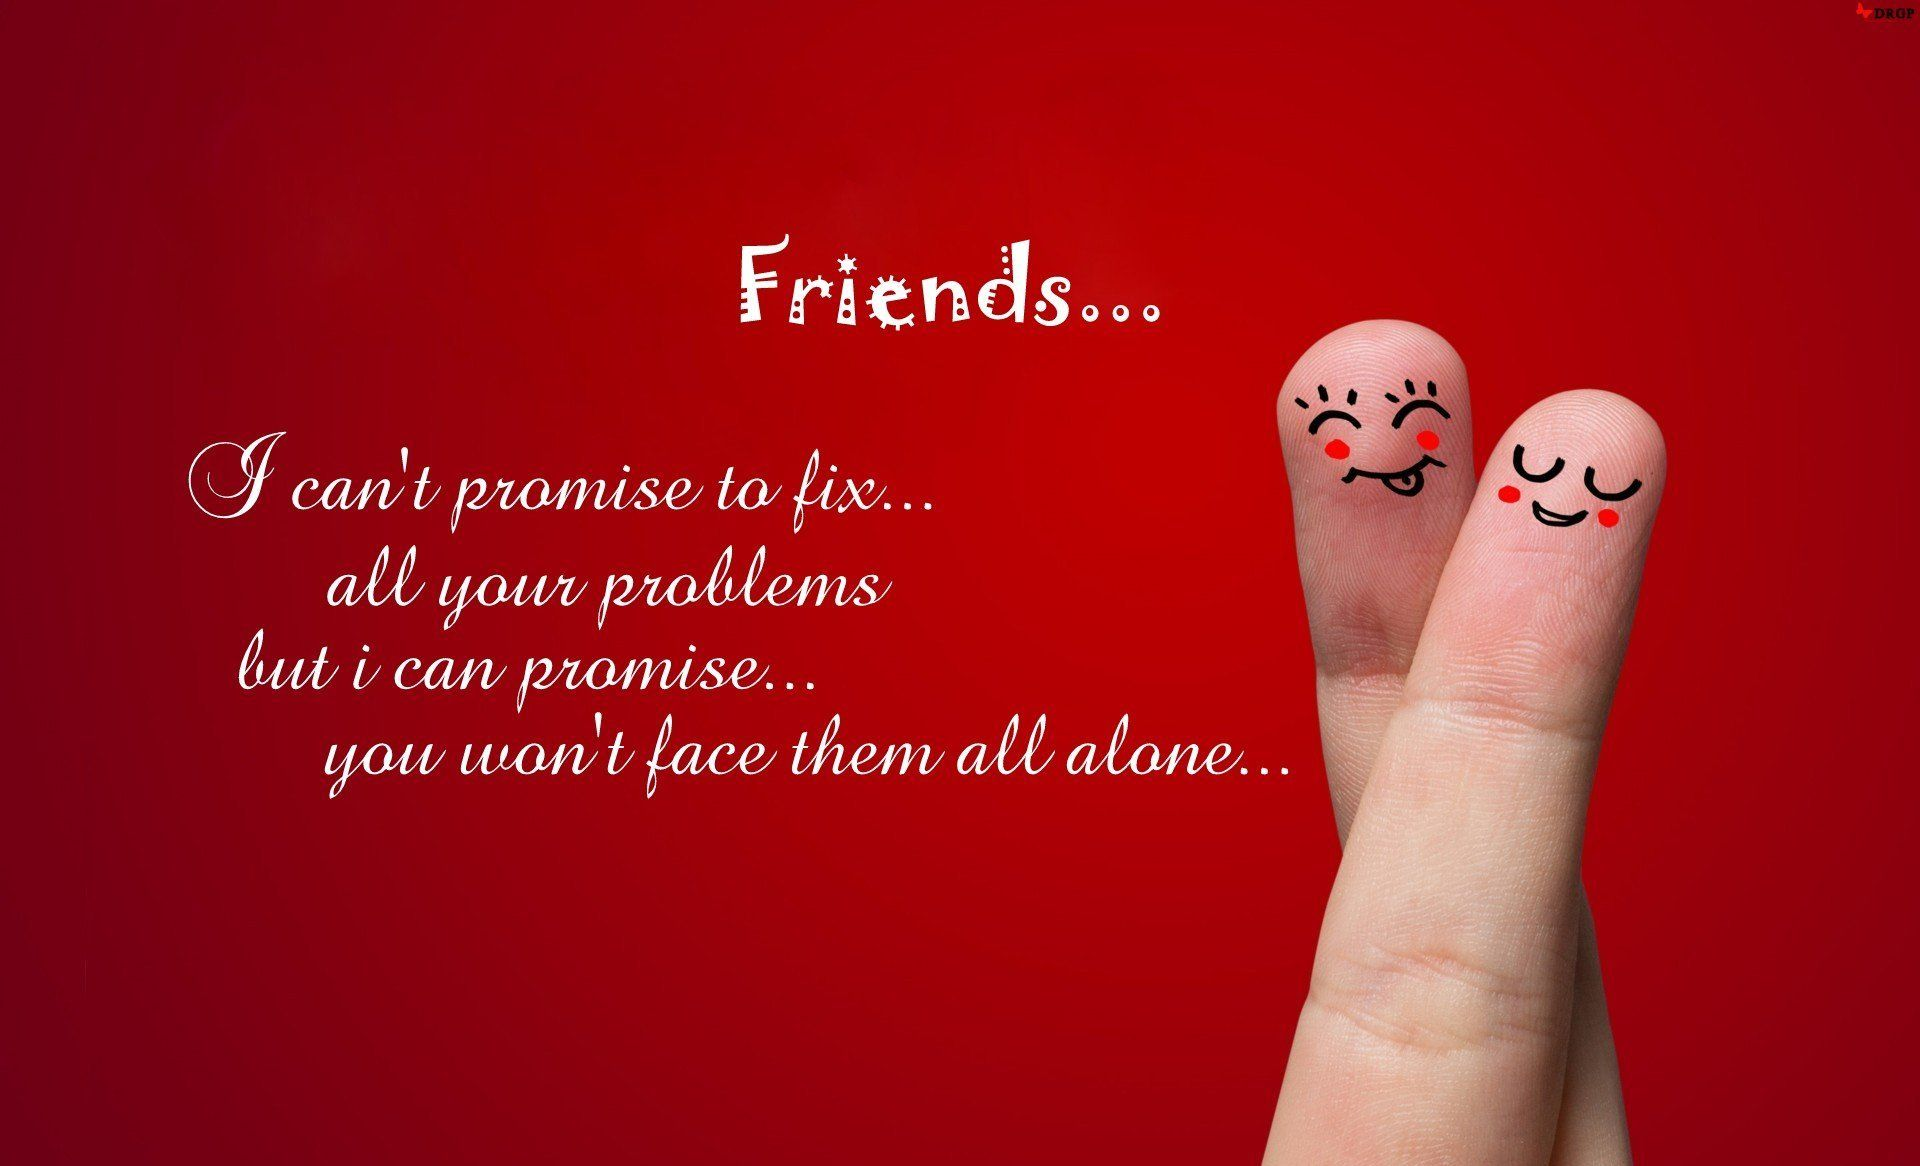 Quotes On Friendship Best Friendship Quotes Collection  Text Messages Collection